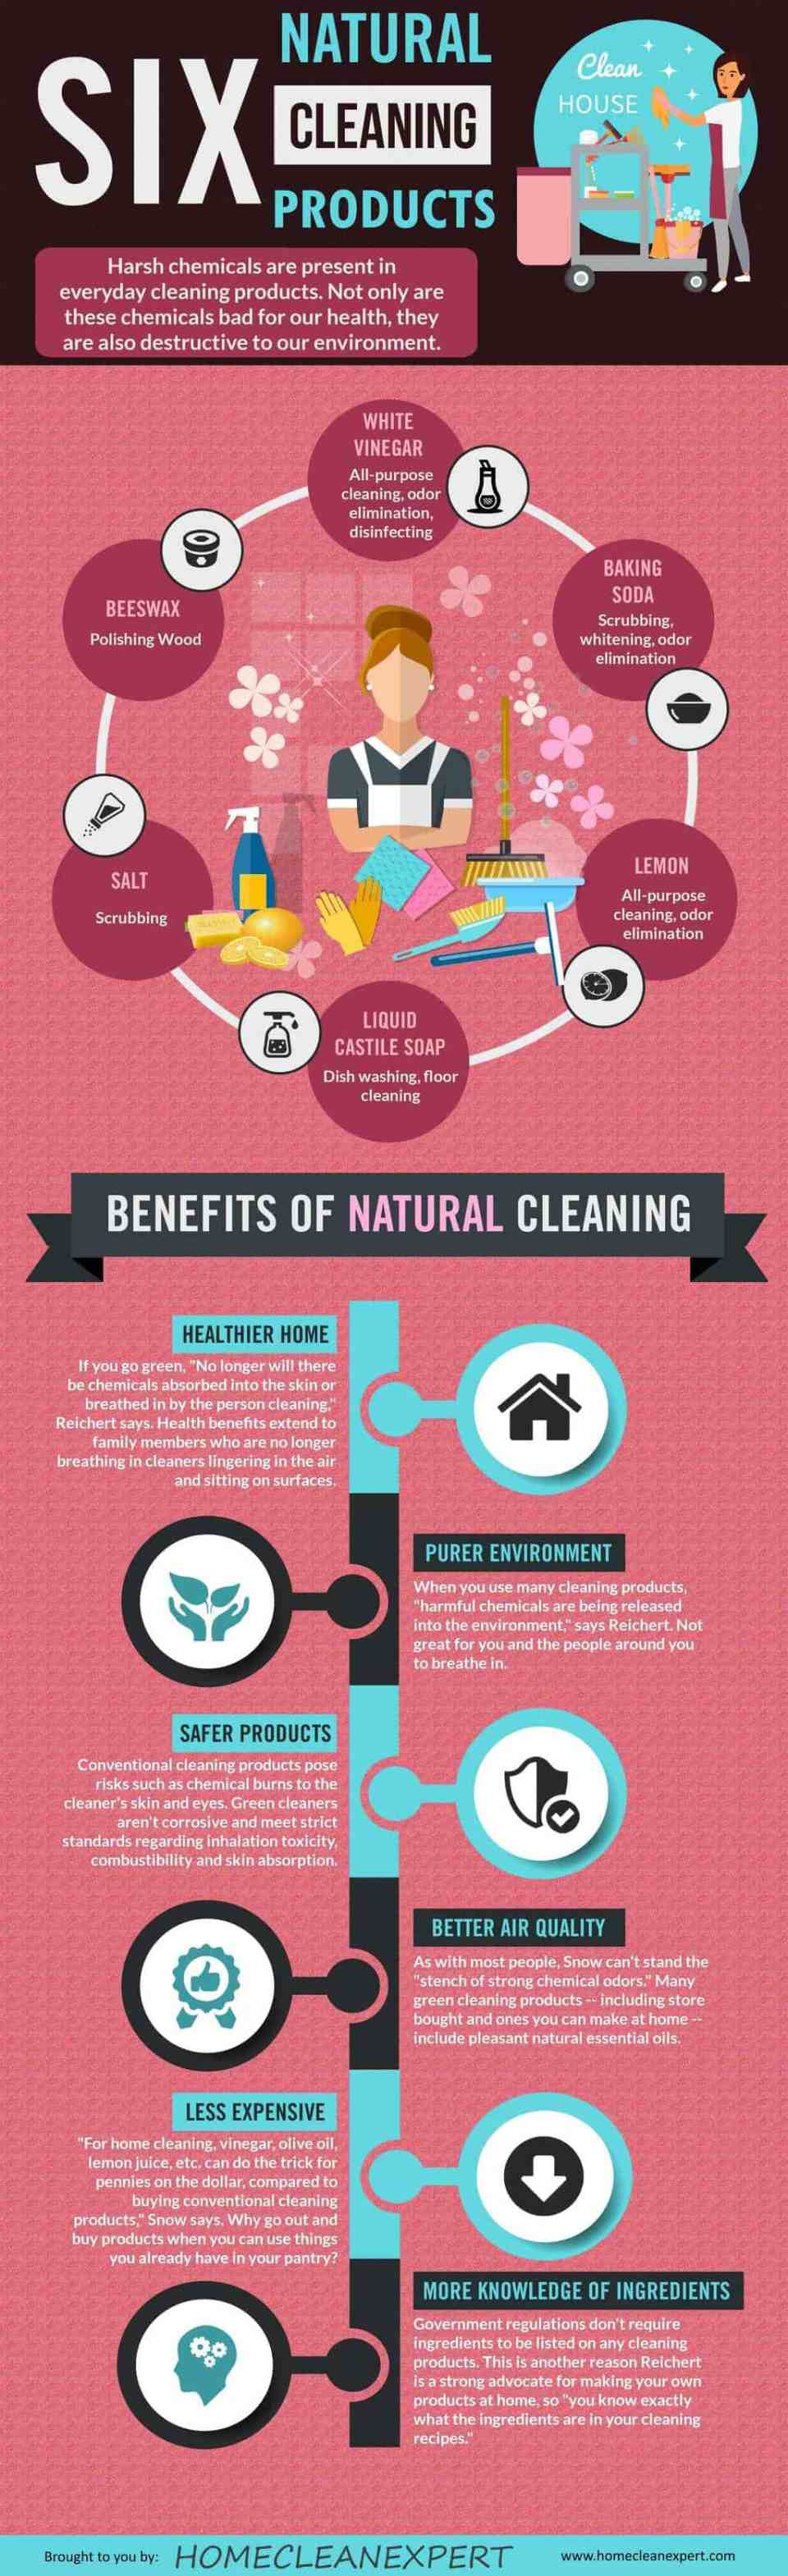 6 natural cleaning products infographic